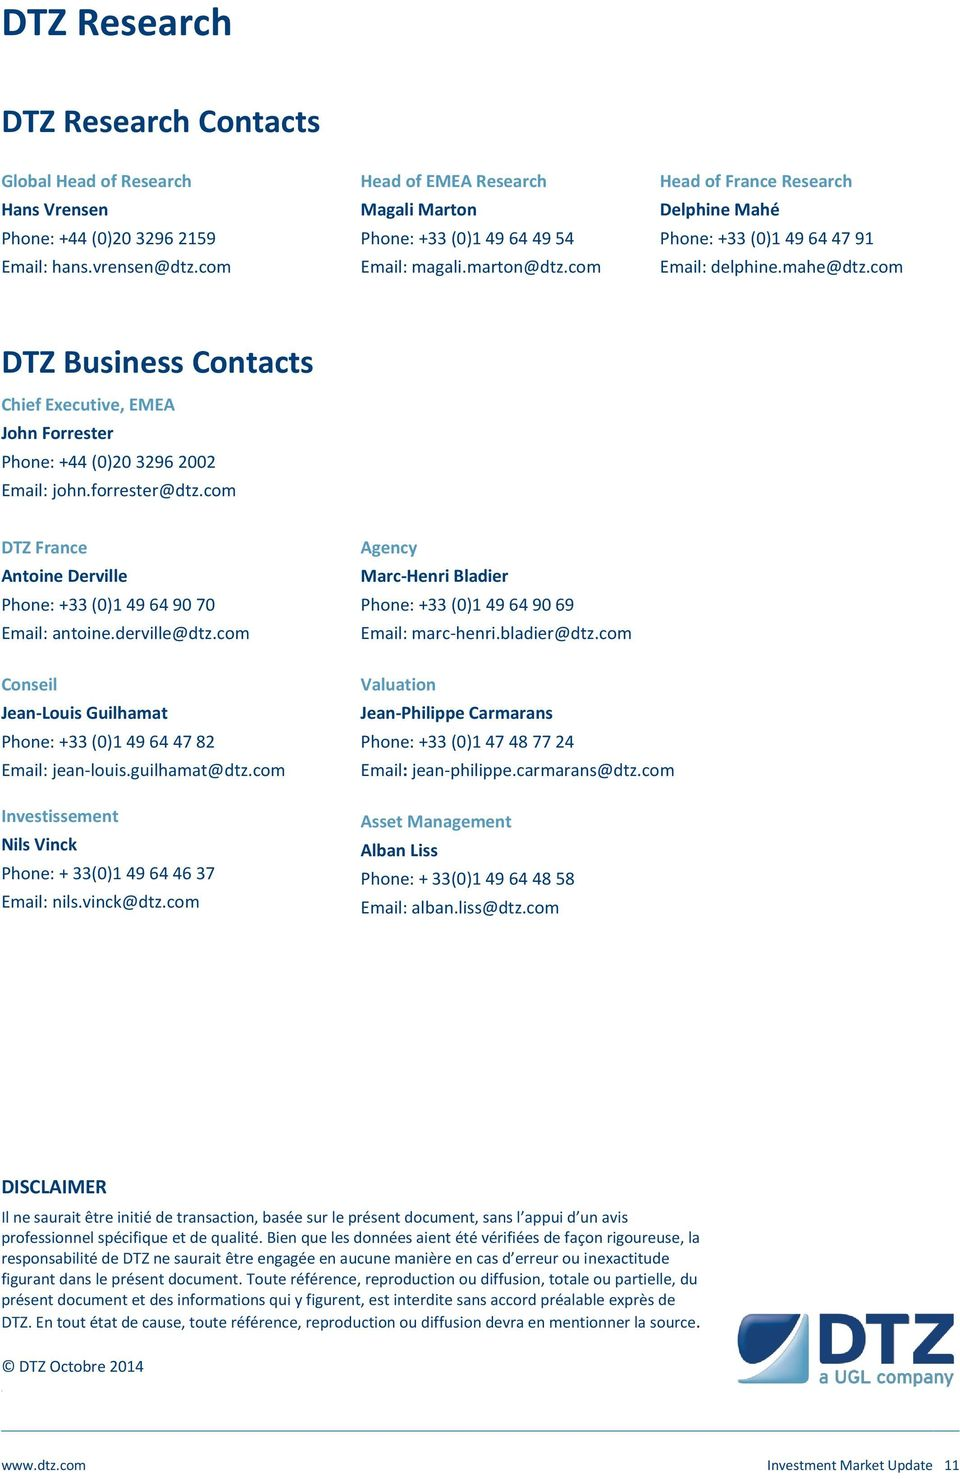 com DTZ Business Contacts Chief Executive, EMEA John Forrester Phone: +44 (0)20 3296 2002 Email: john.forrester@dtz.com DTZ France Antoine Derville Phone: +33 (0)1 49 64 90 70 Email: antoine.